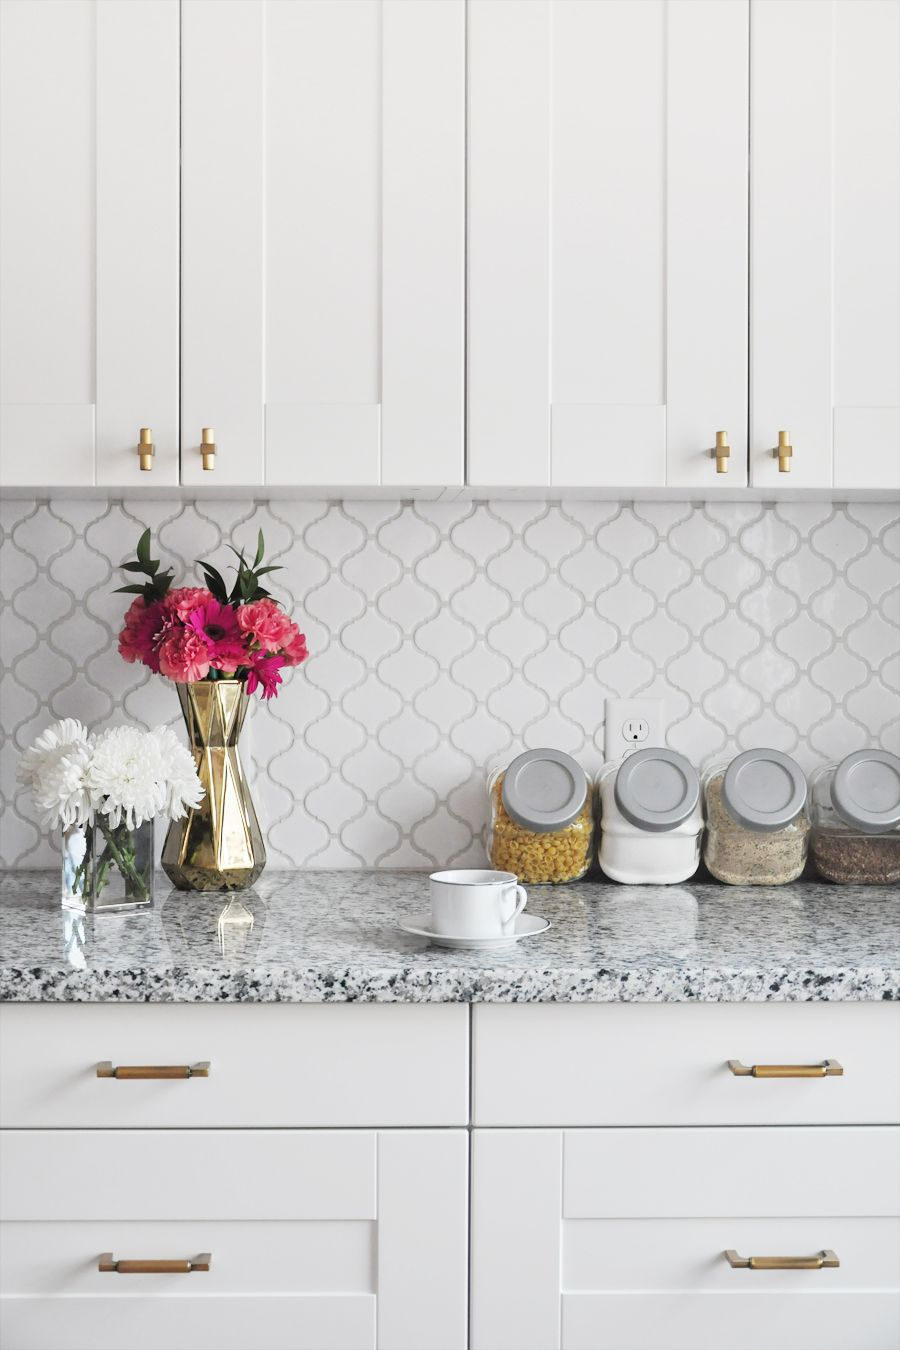 Diy Kitchen Backsplash Tile Ideas Part - 46: How To Tile A Kitchen Backsplash: DIY Tutorial